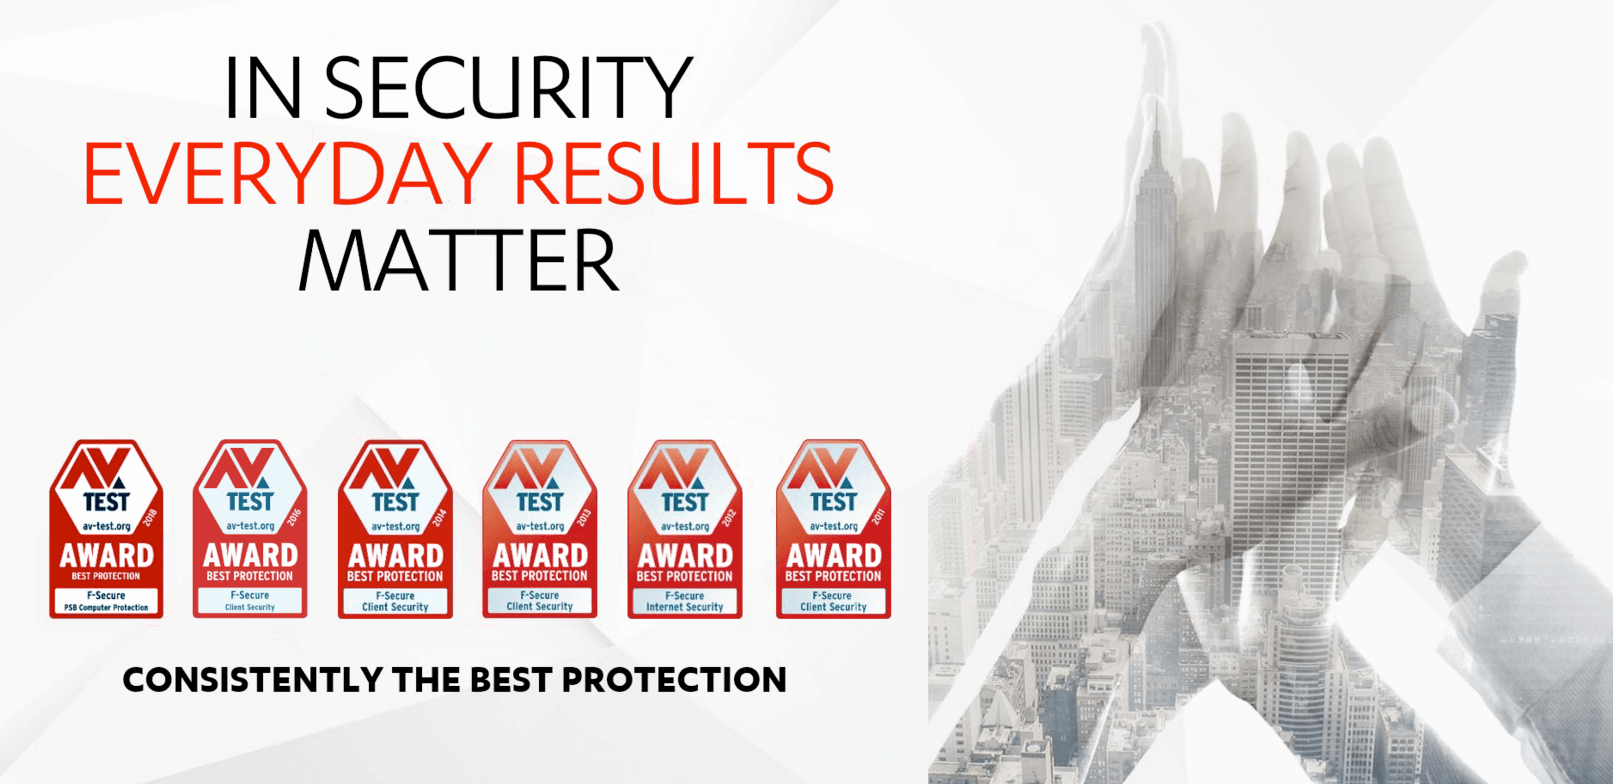 F-Secure Wins Best Computer Security Award, Again